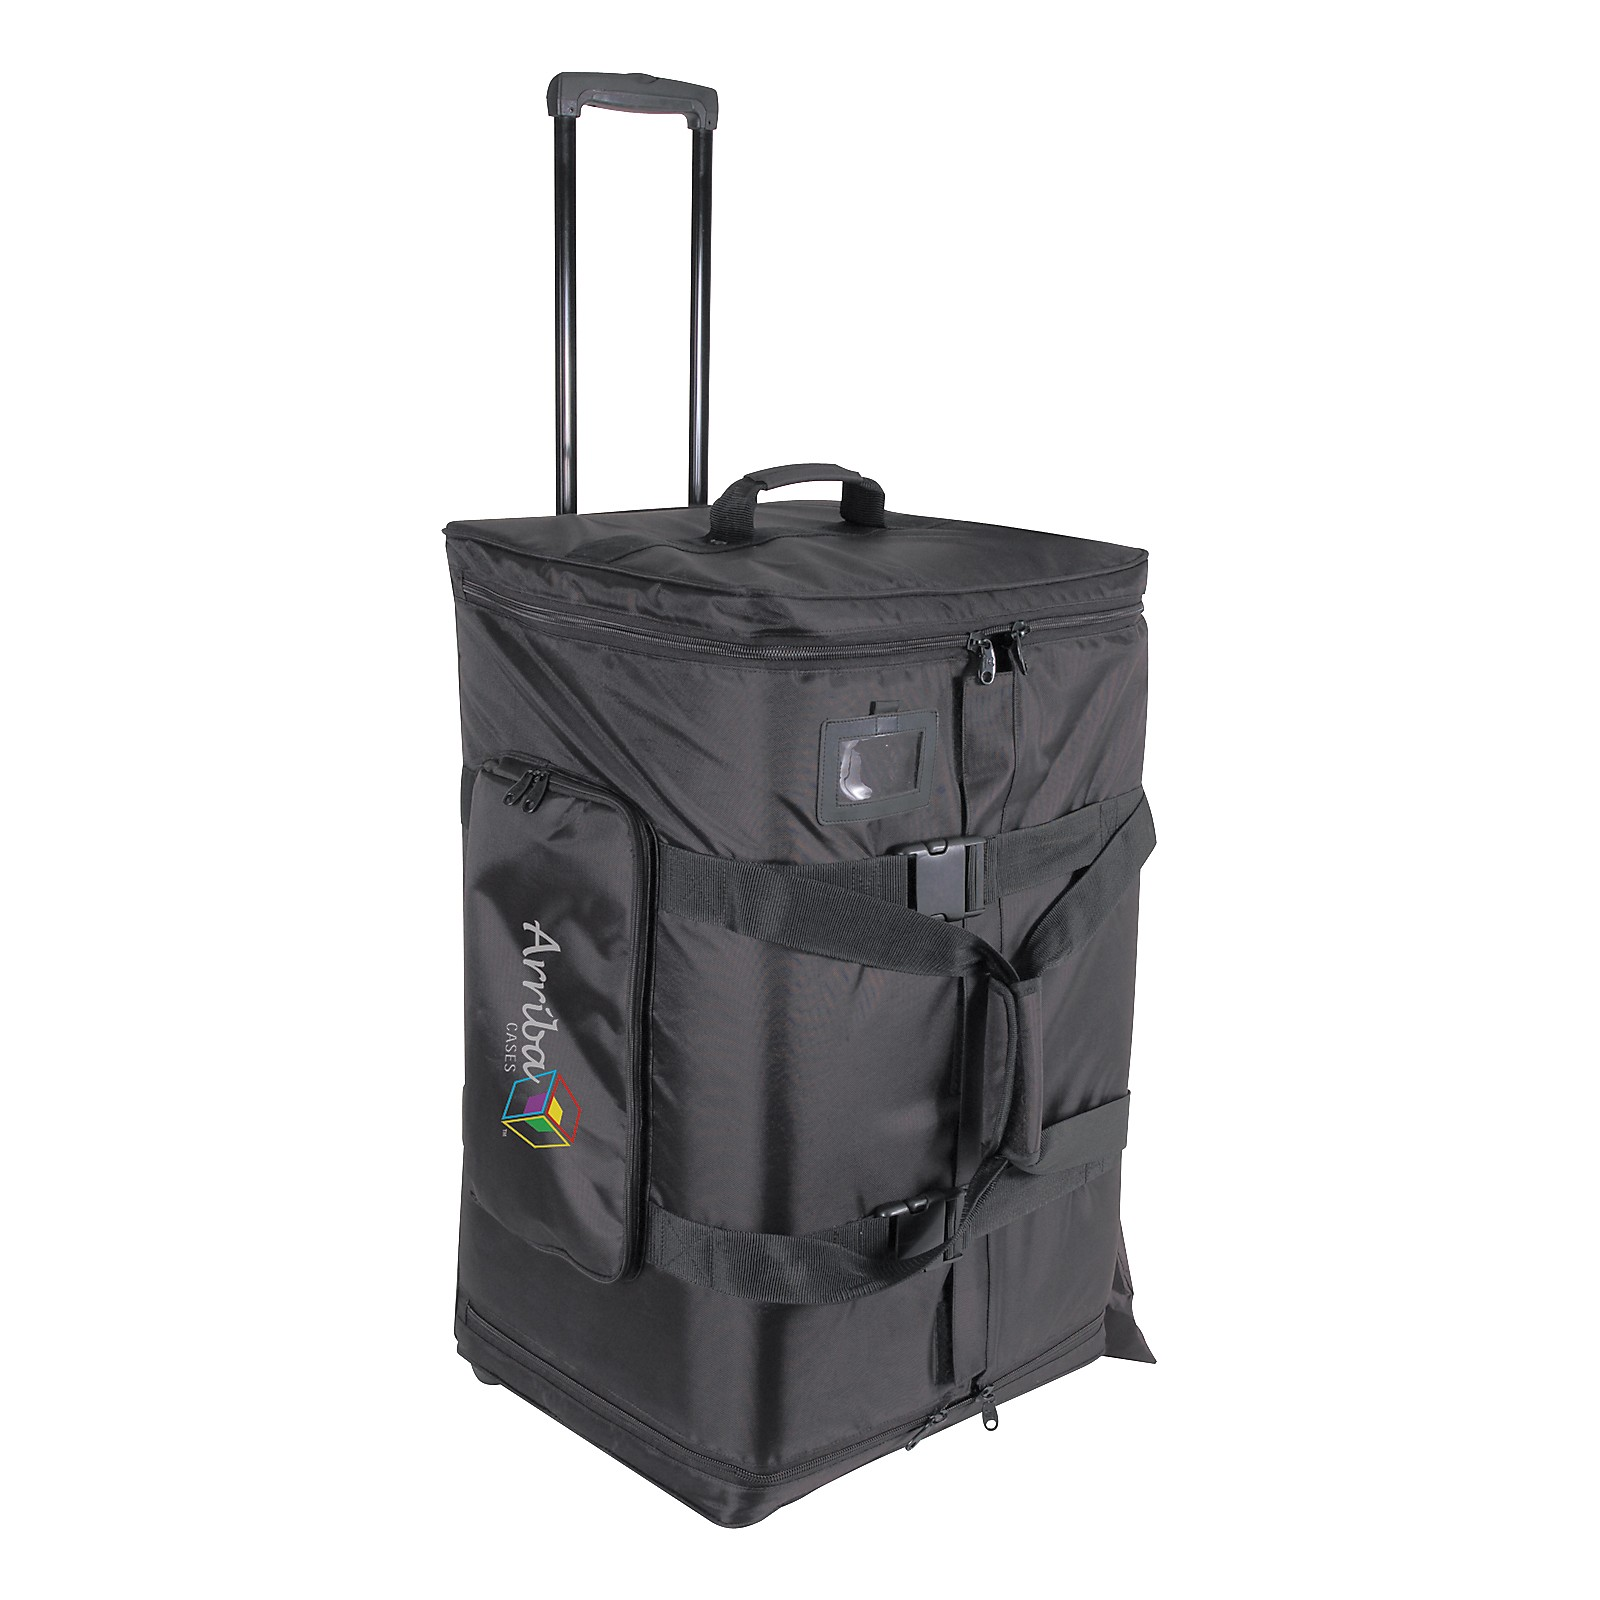 Arriba Cases AS-175 Speaker and Stand Combo Bag with Wheels